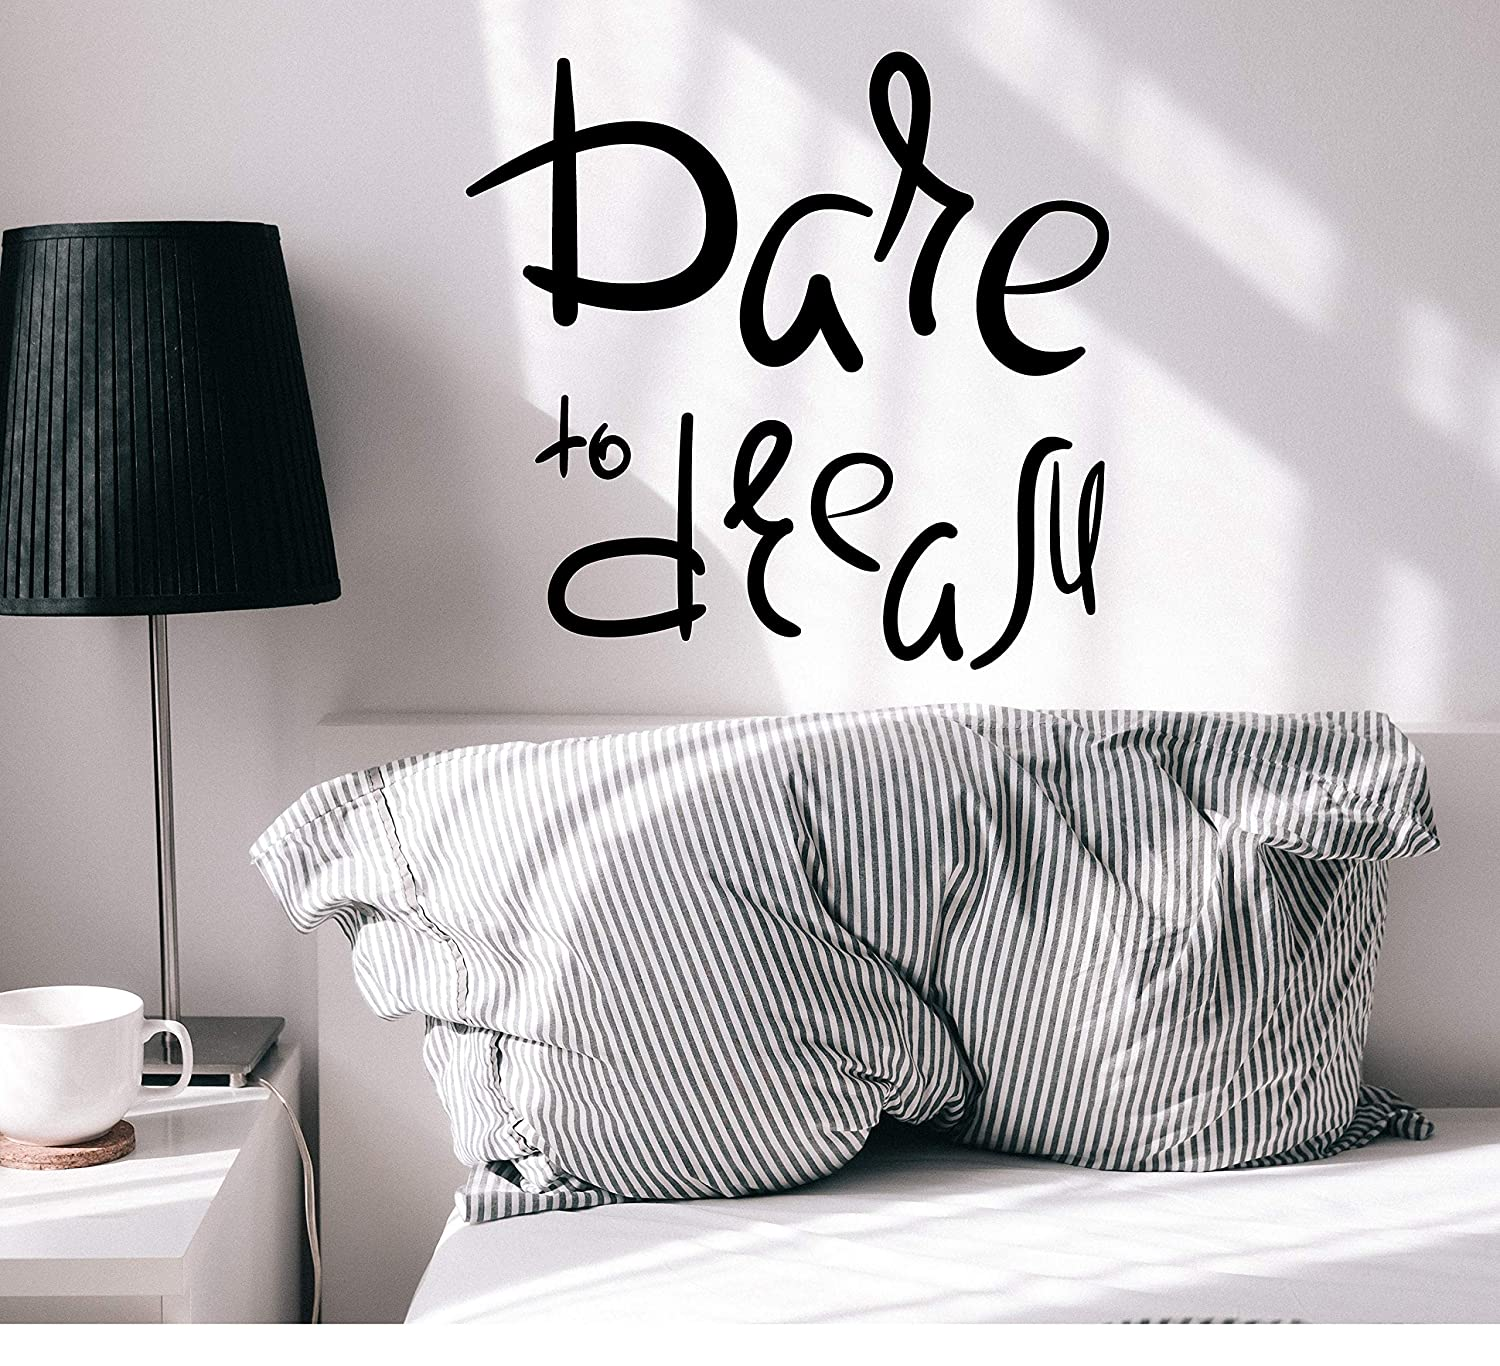 Vinyl Wall Decal Inspirational Phrase Dare to Dream Home Room Decor Stickers Mural 22.5 in x 21.5 in gz283